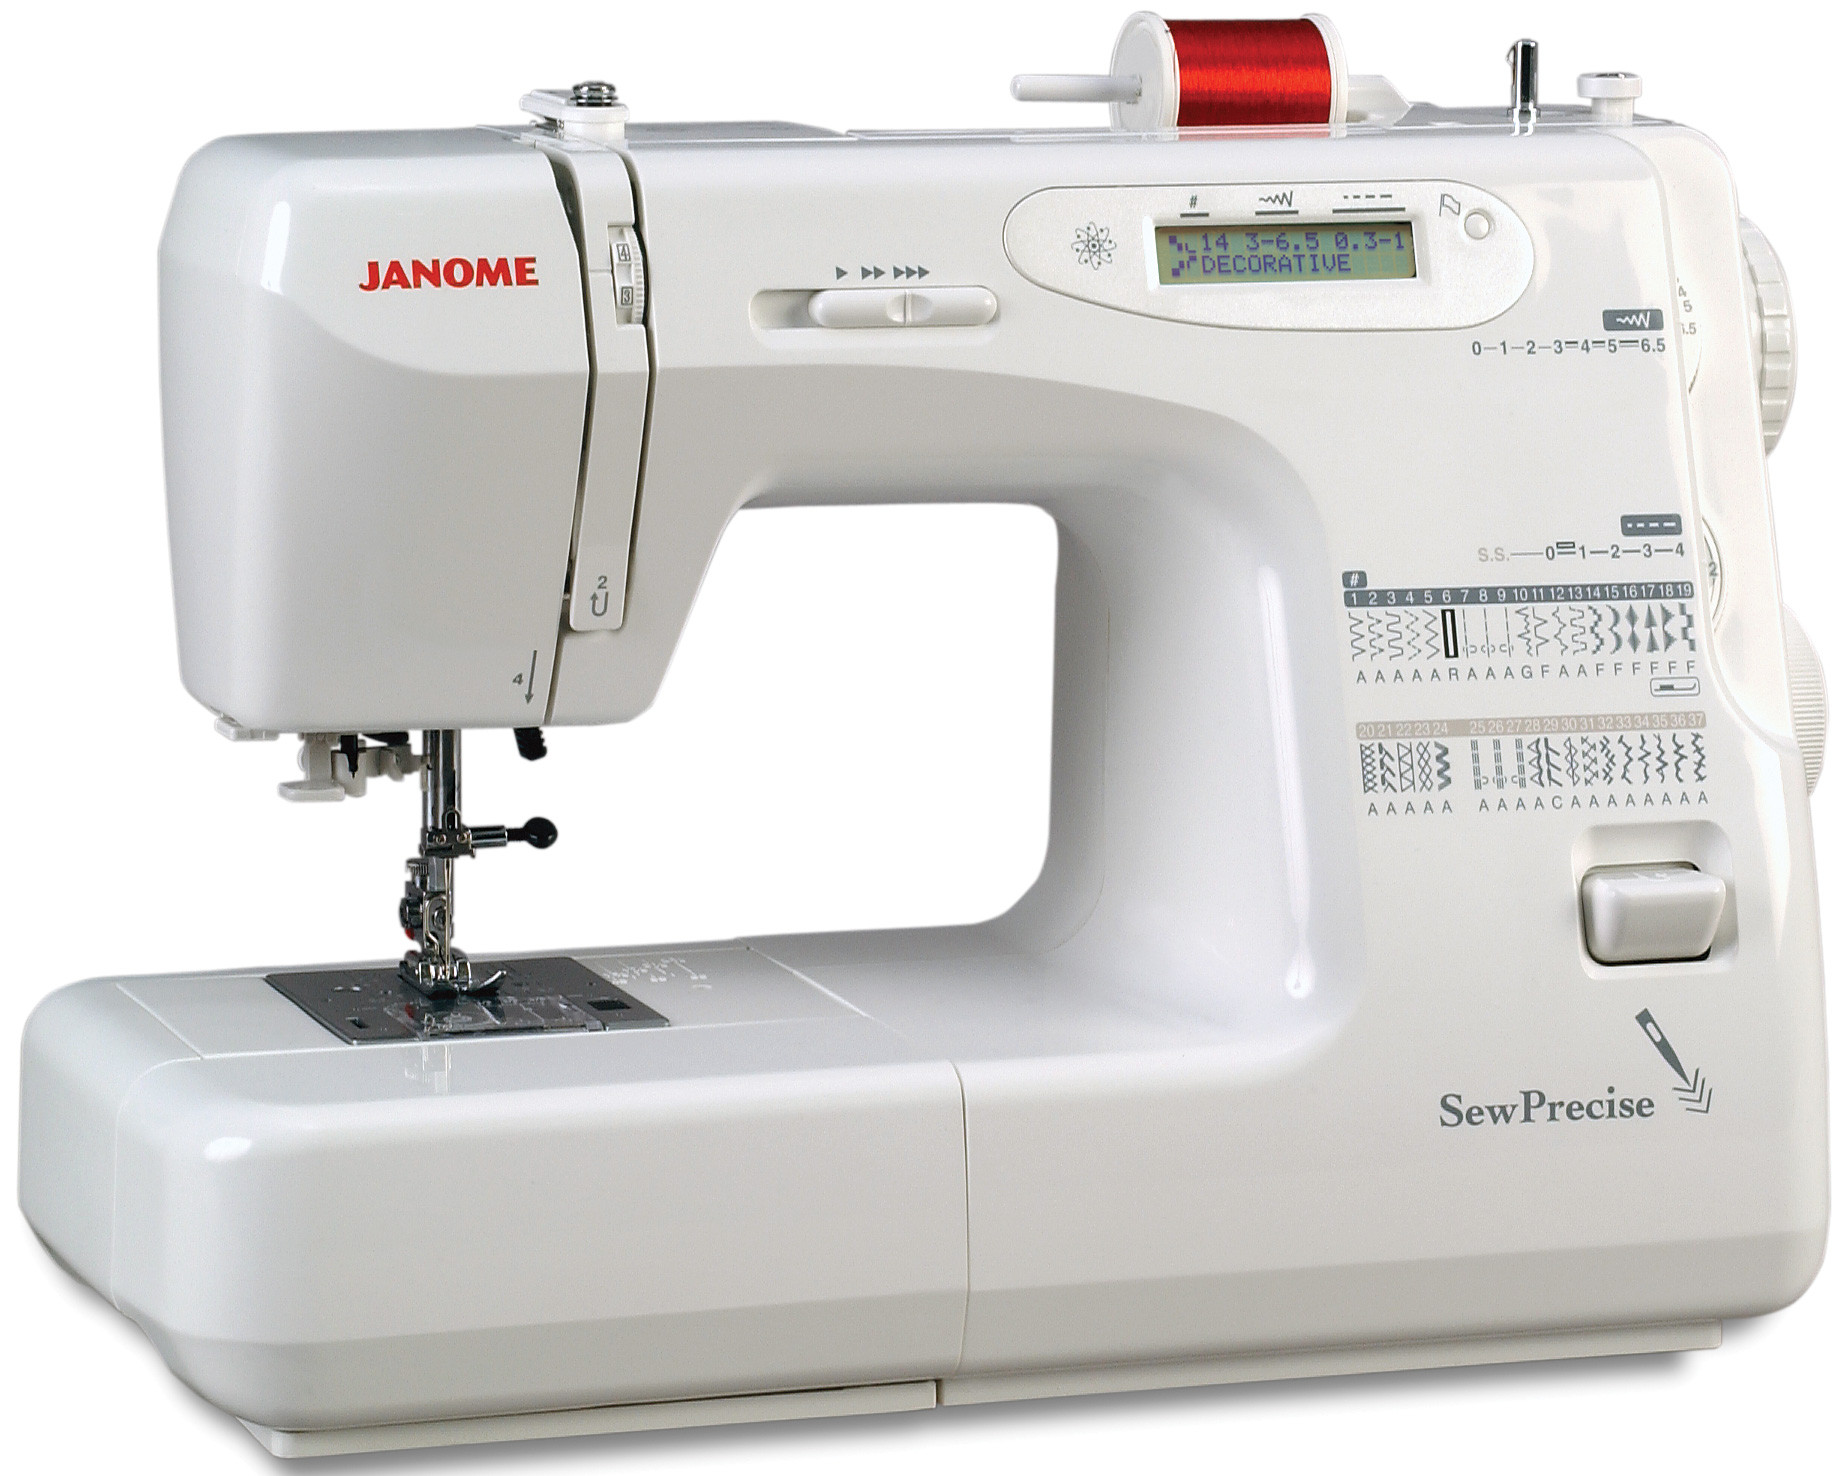 Sewing and Embroidery Machine Beautiful Janome Sew Precise Sewing Machine Of Unique 48 Pics Sewing and Embroidery Machine